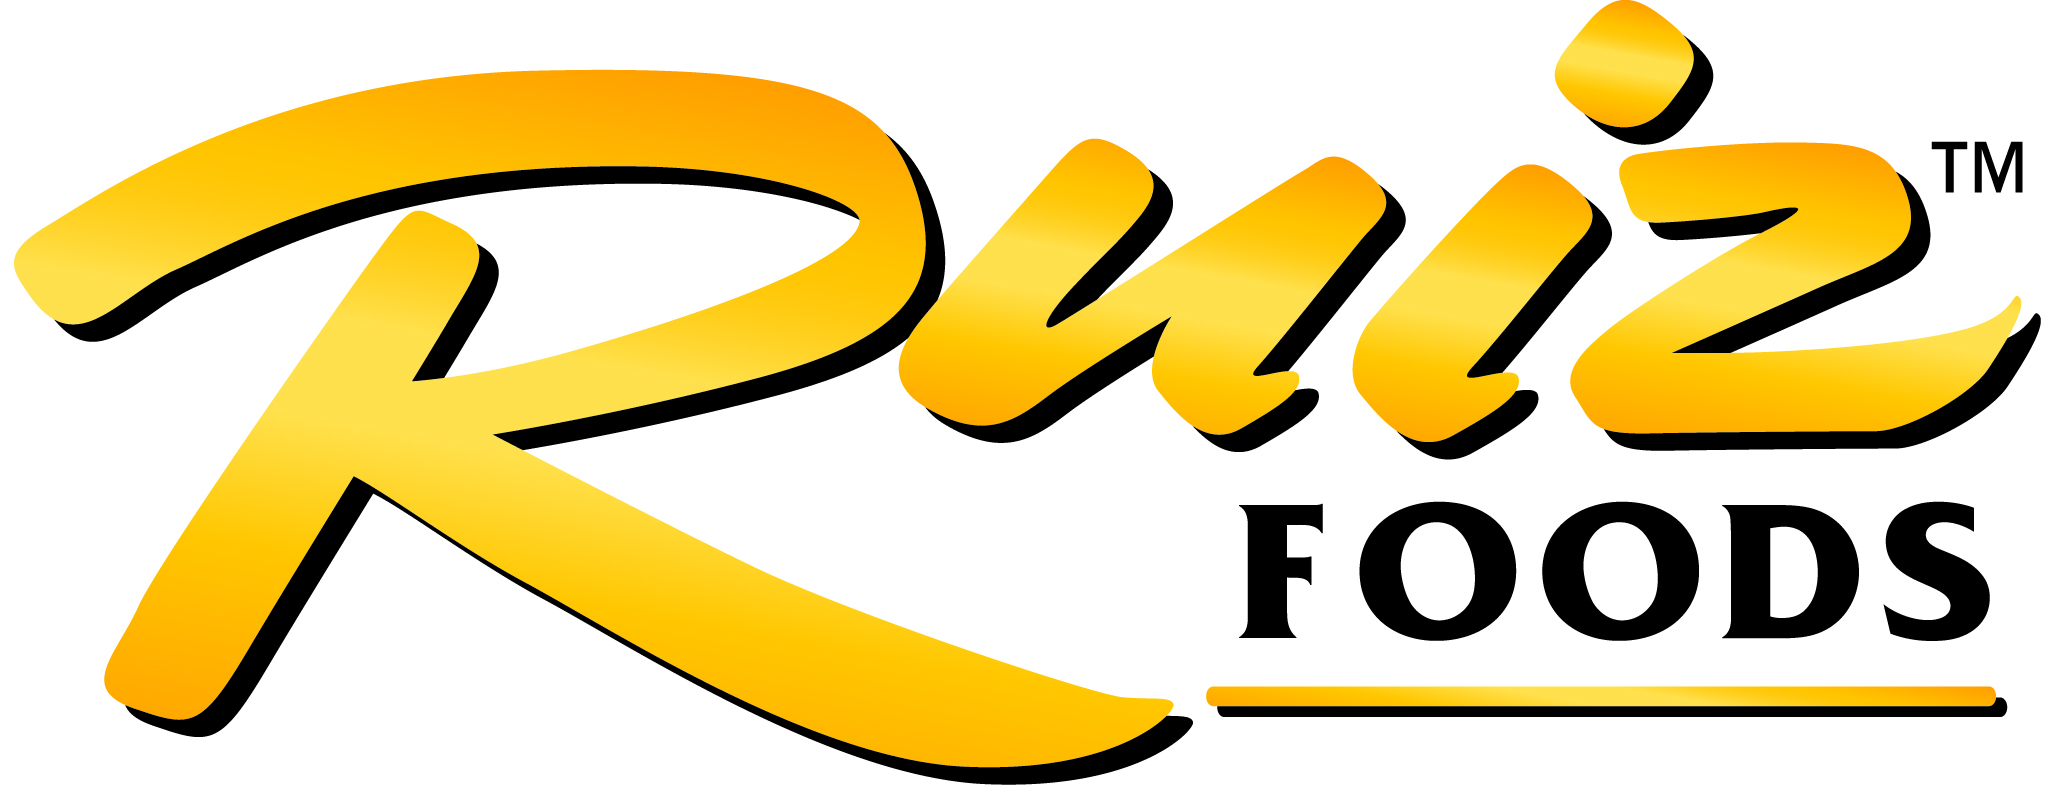 Ruiz Foods Announces Phase Ii Expansion Of The Denison